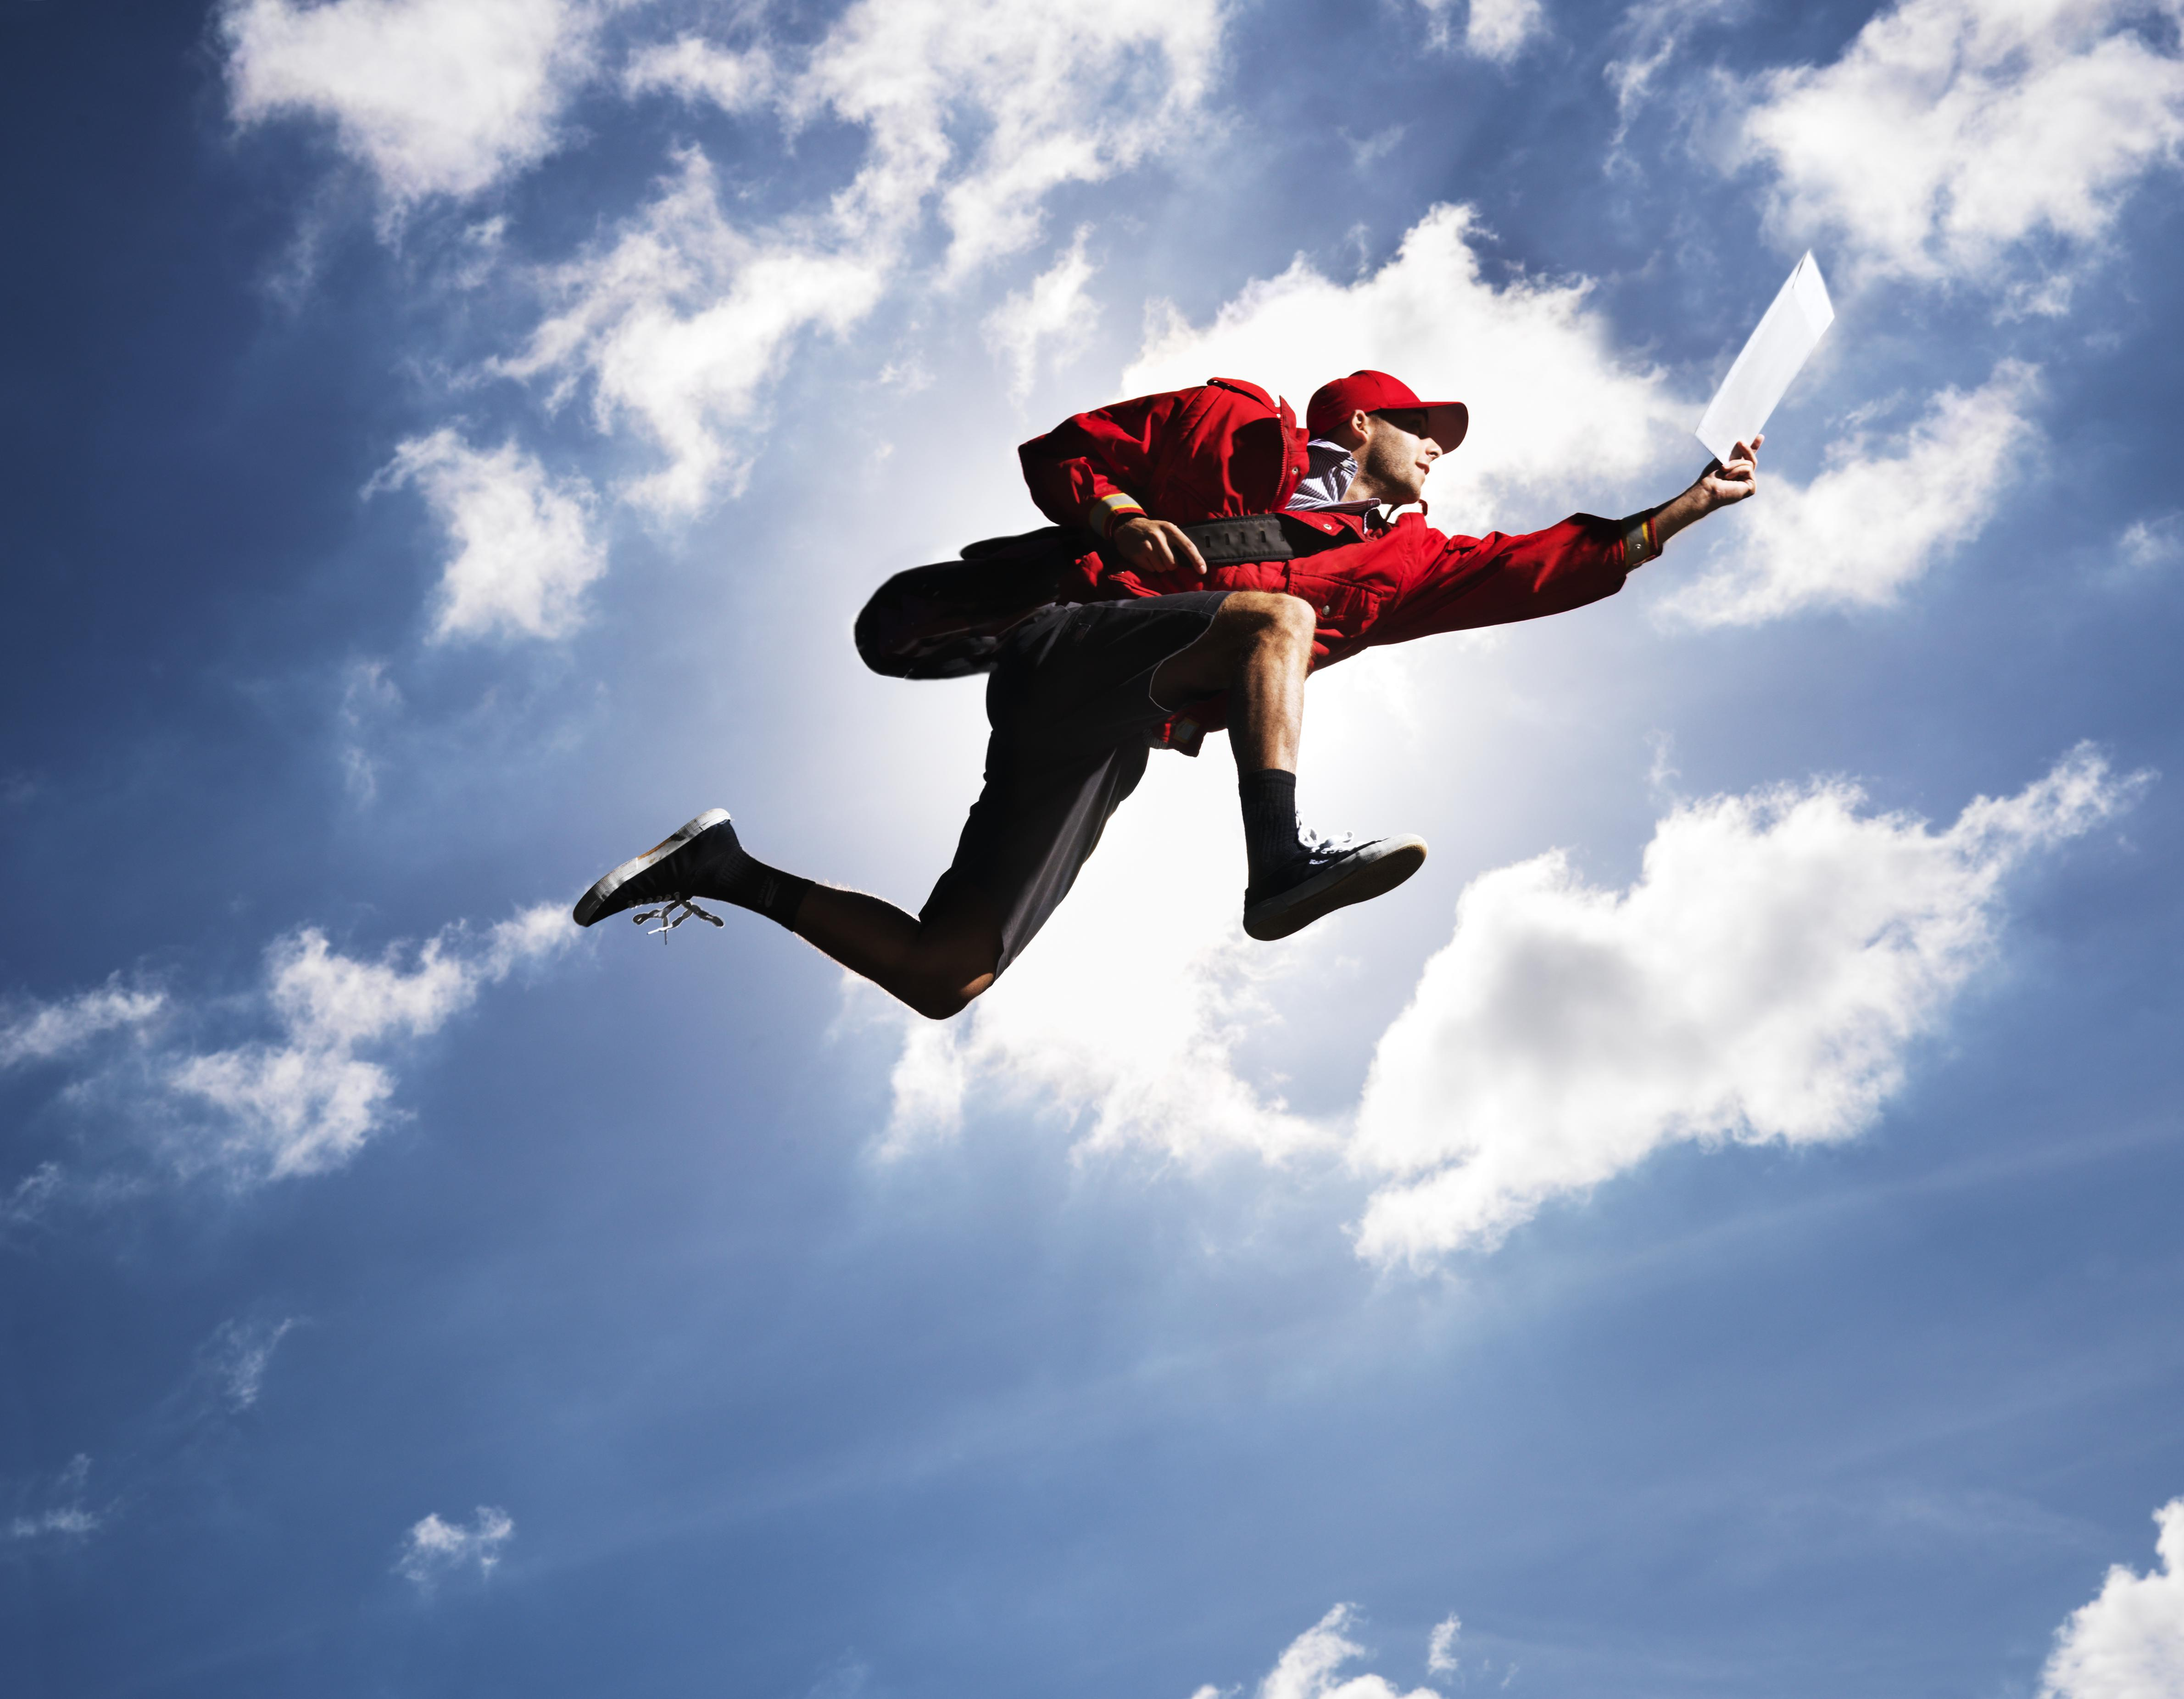 Man flying in air with letter in hand, against sky, low angle view